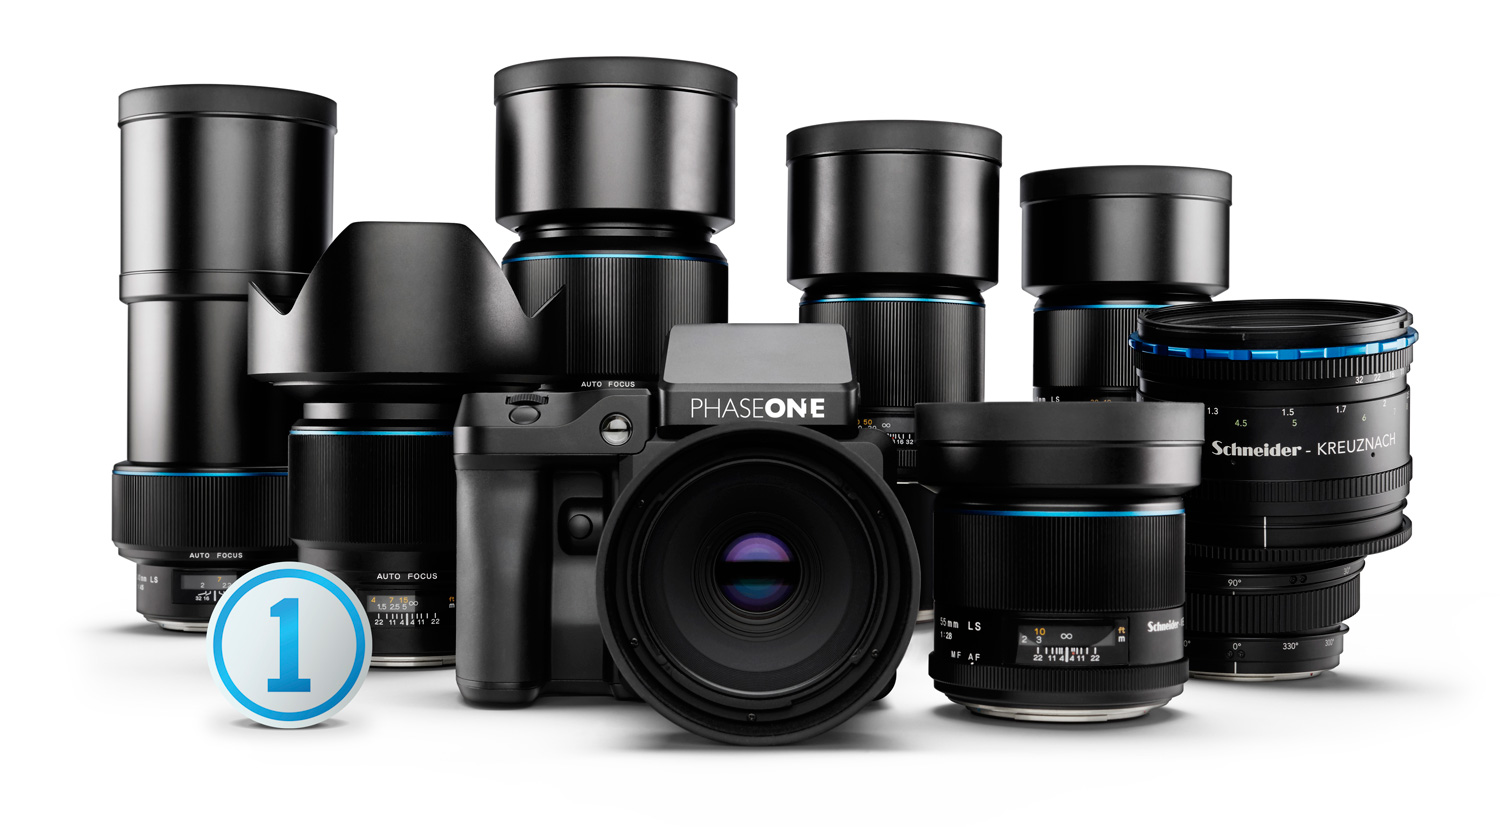 Phase One Releases Second XF Camera System Feature Update: Adds New XF Tools, Lenses & Software - Resource